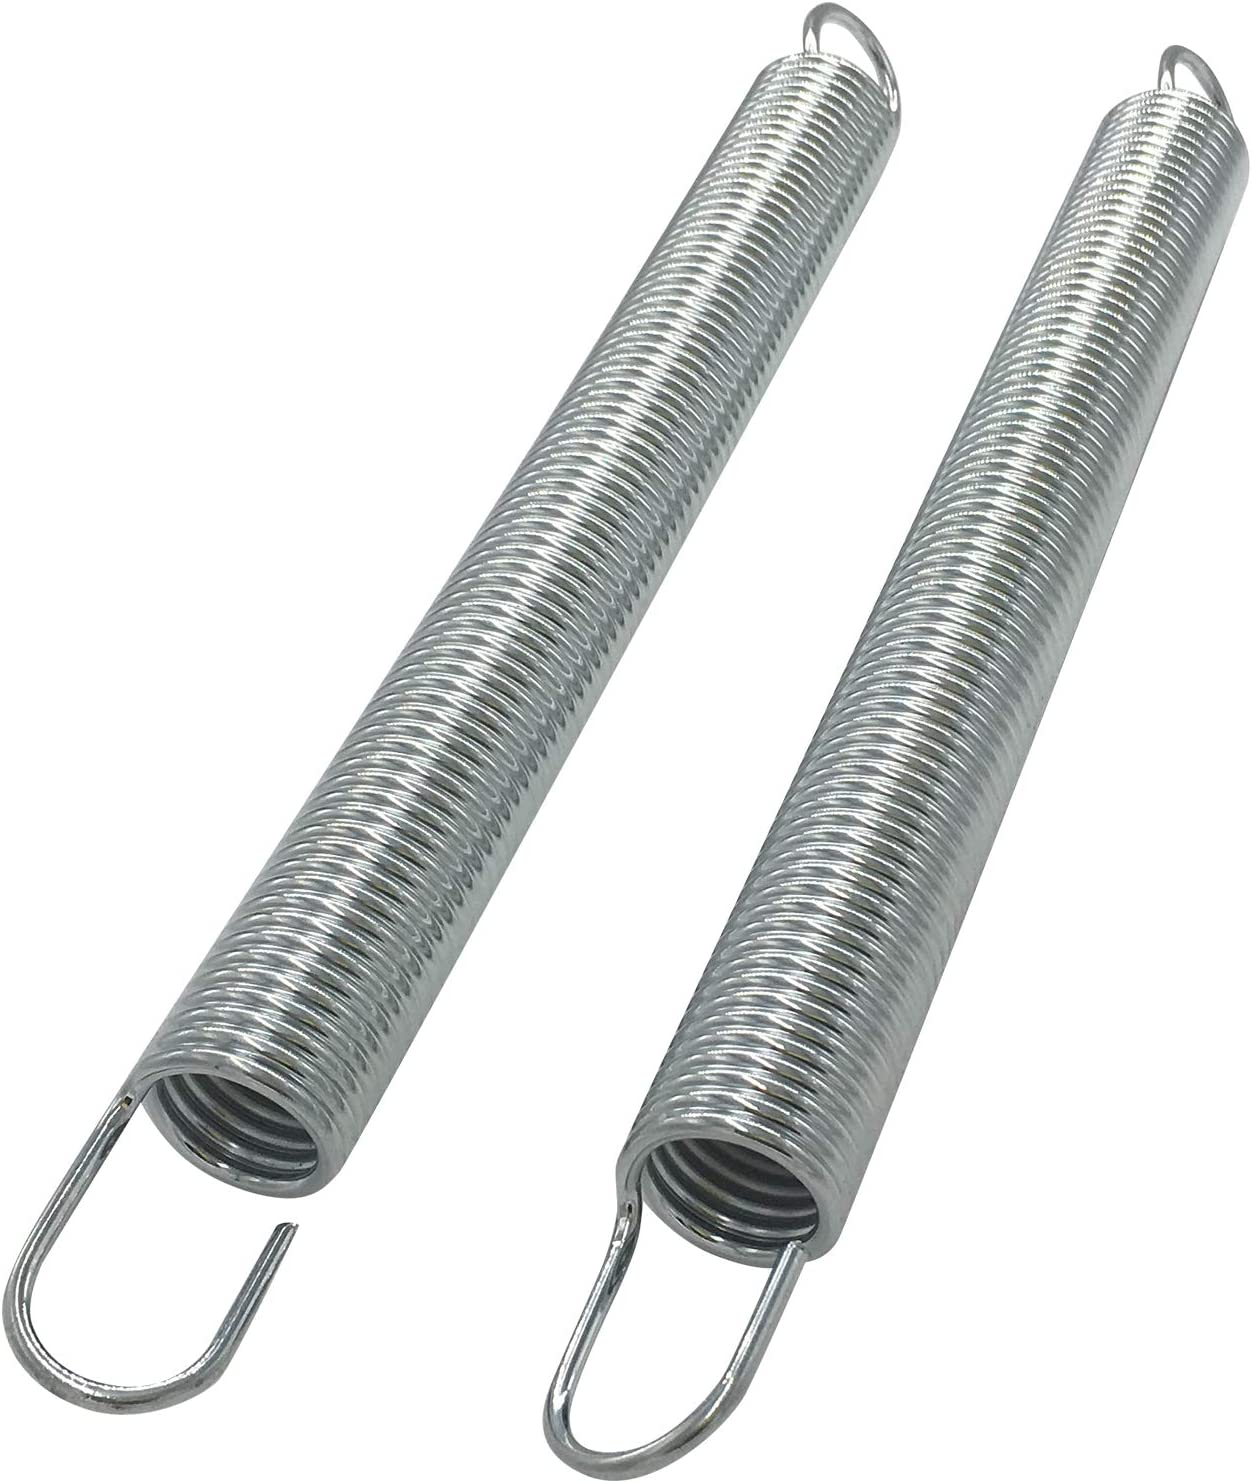 Extra Resistance Set Of 2 Springs For Pilates PRO Chair